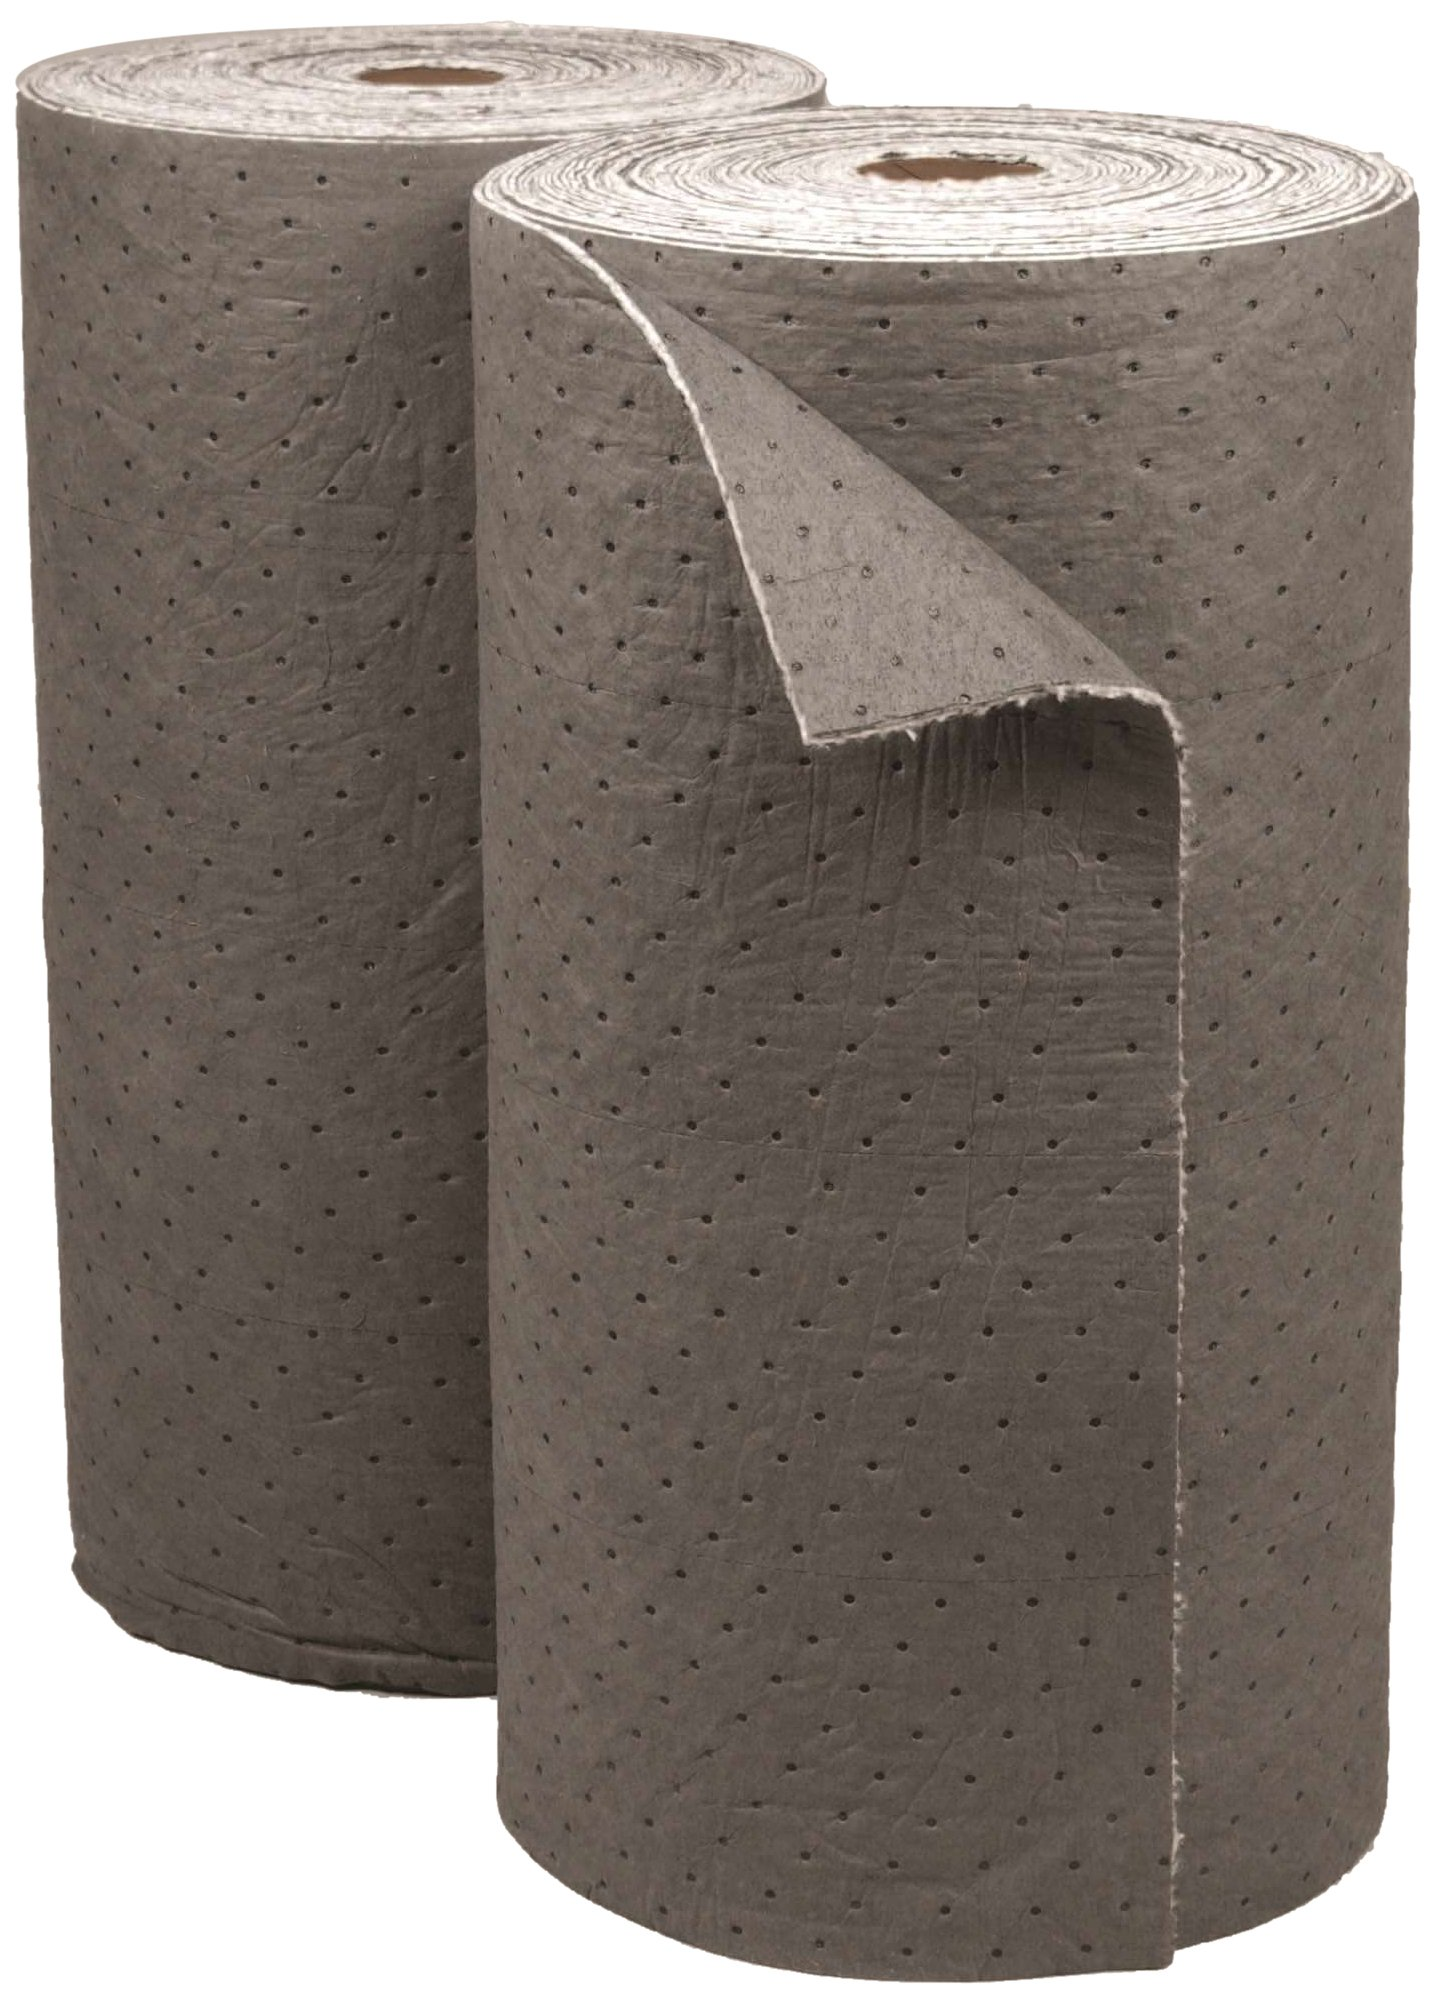 Stardust Spill Products 3SDGRB Universal Lightweight Bonded Perforated Roll, 30''x300', Pack of 1